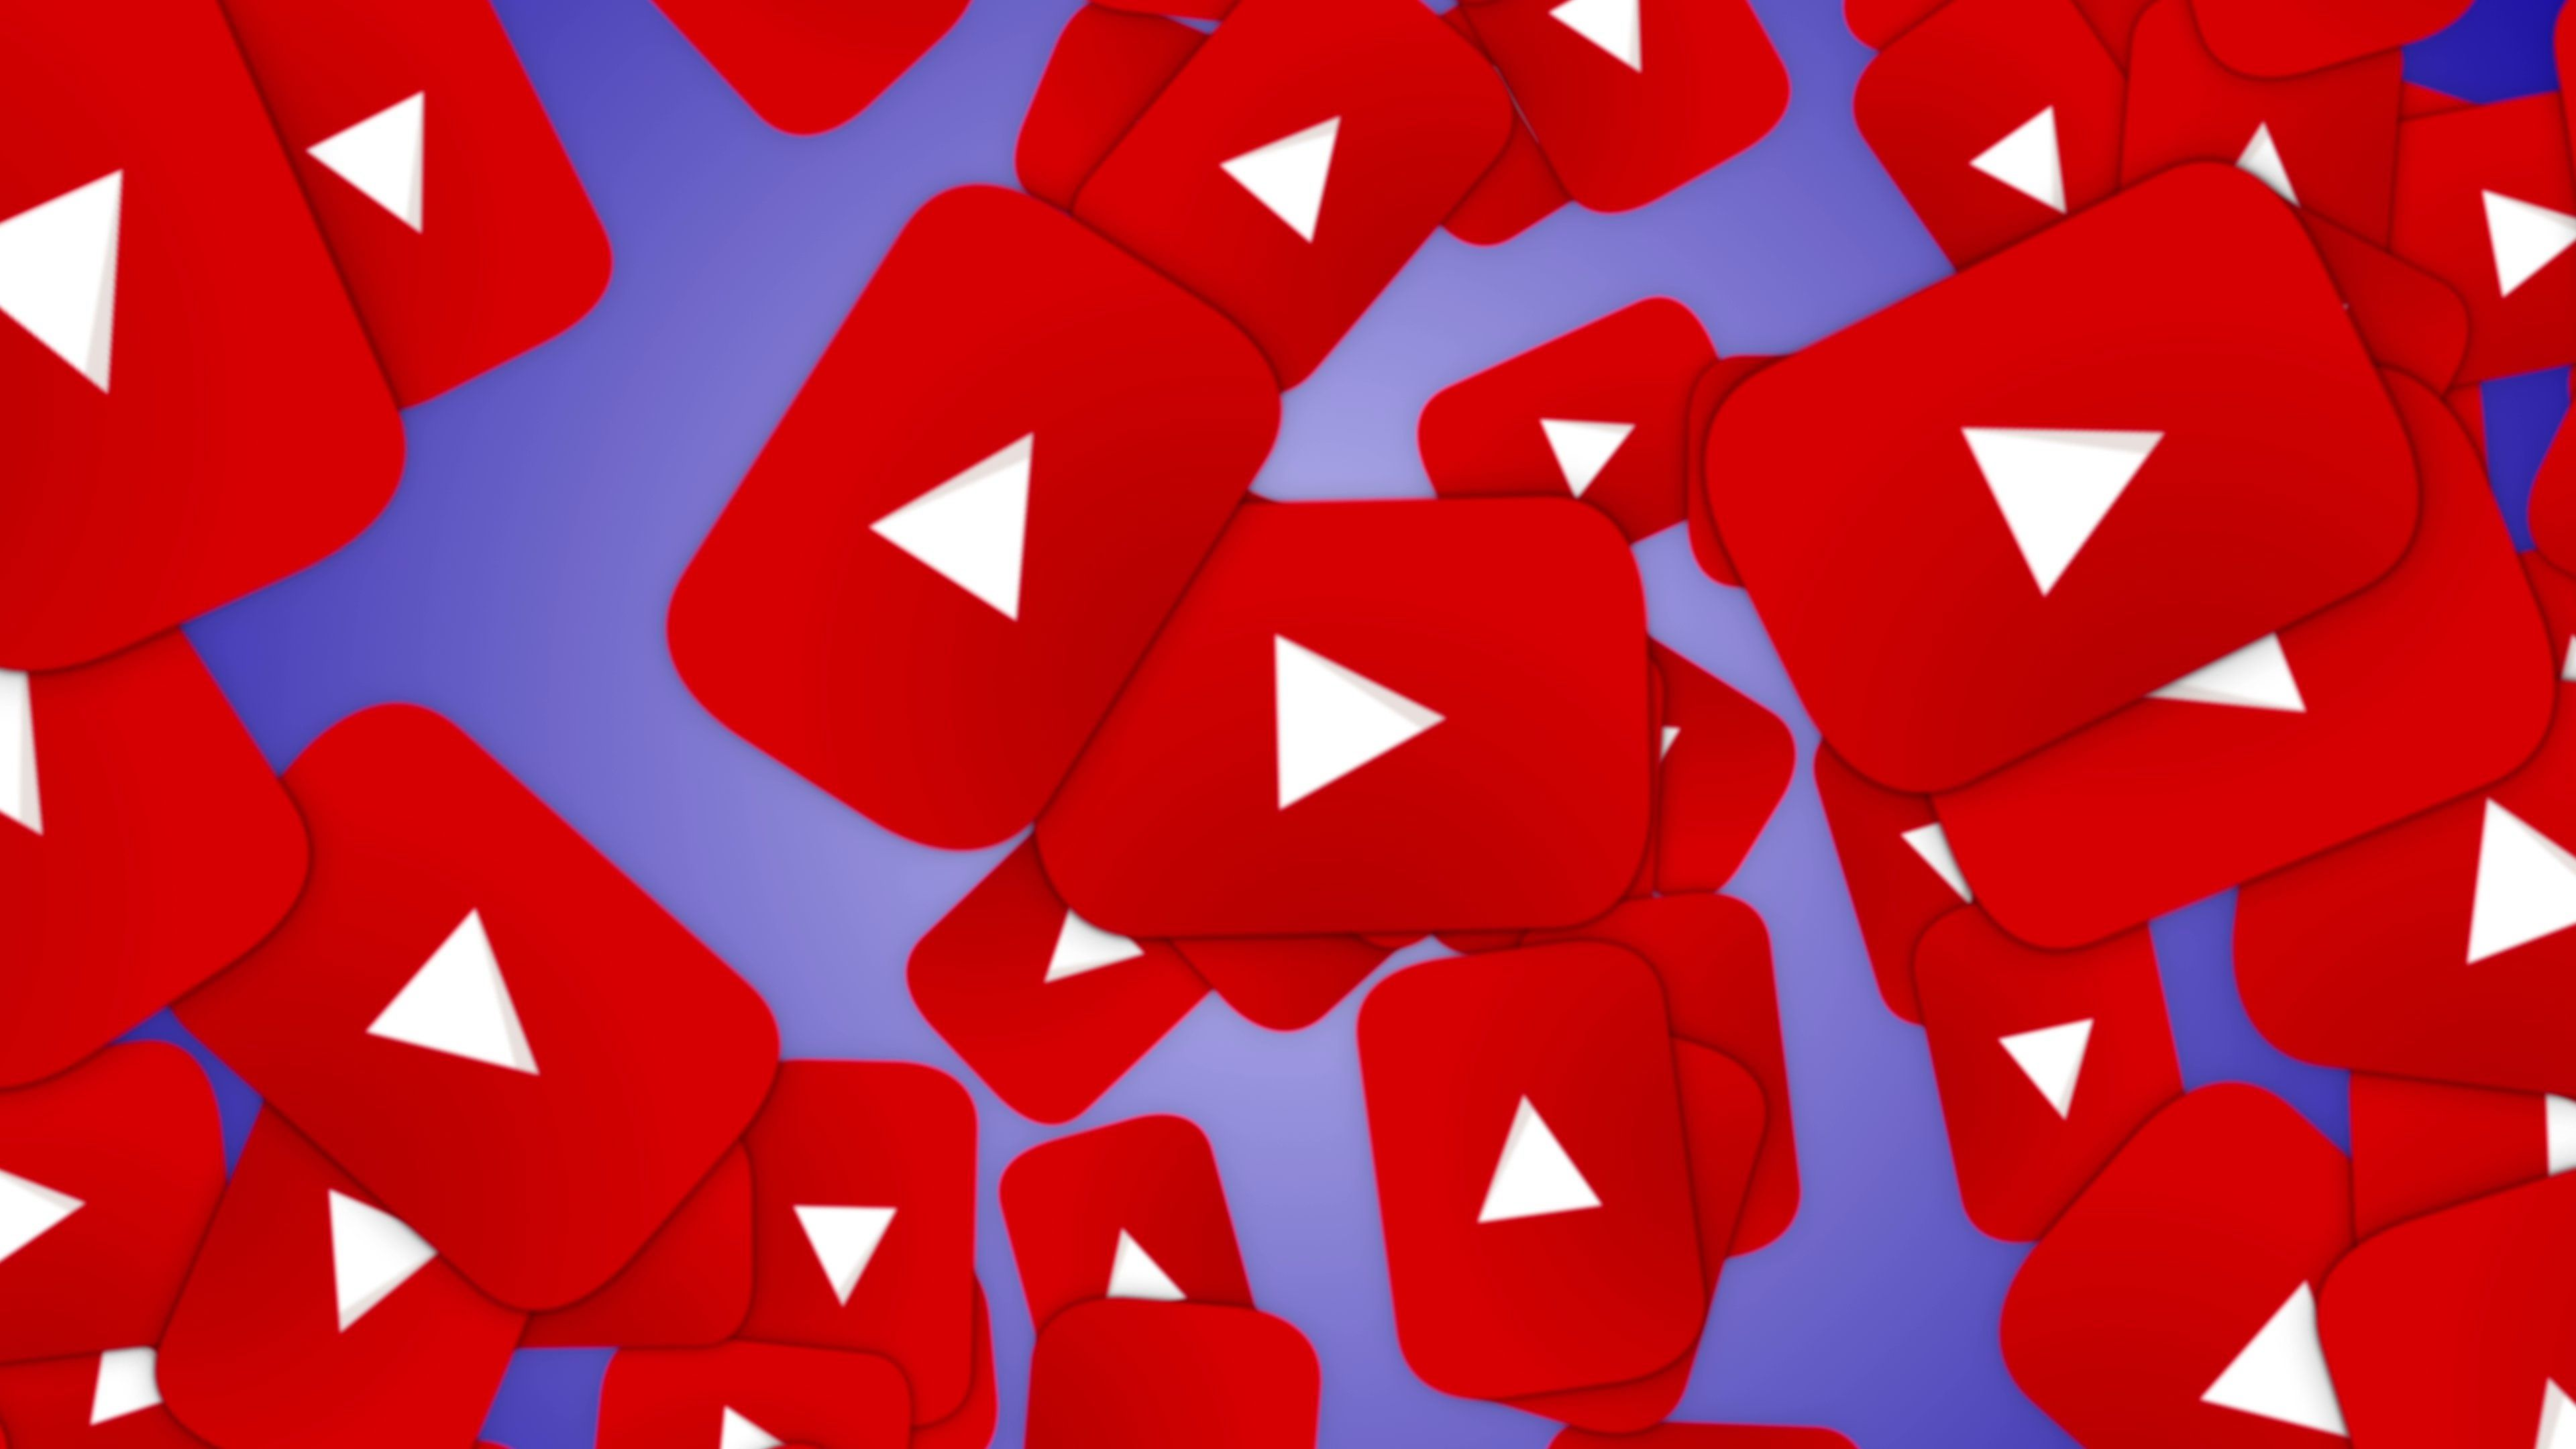 Falling YOUTUBE Logo Animation, with Alpha Channel Stock